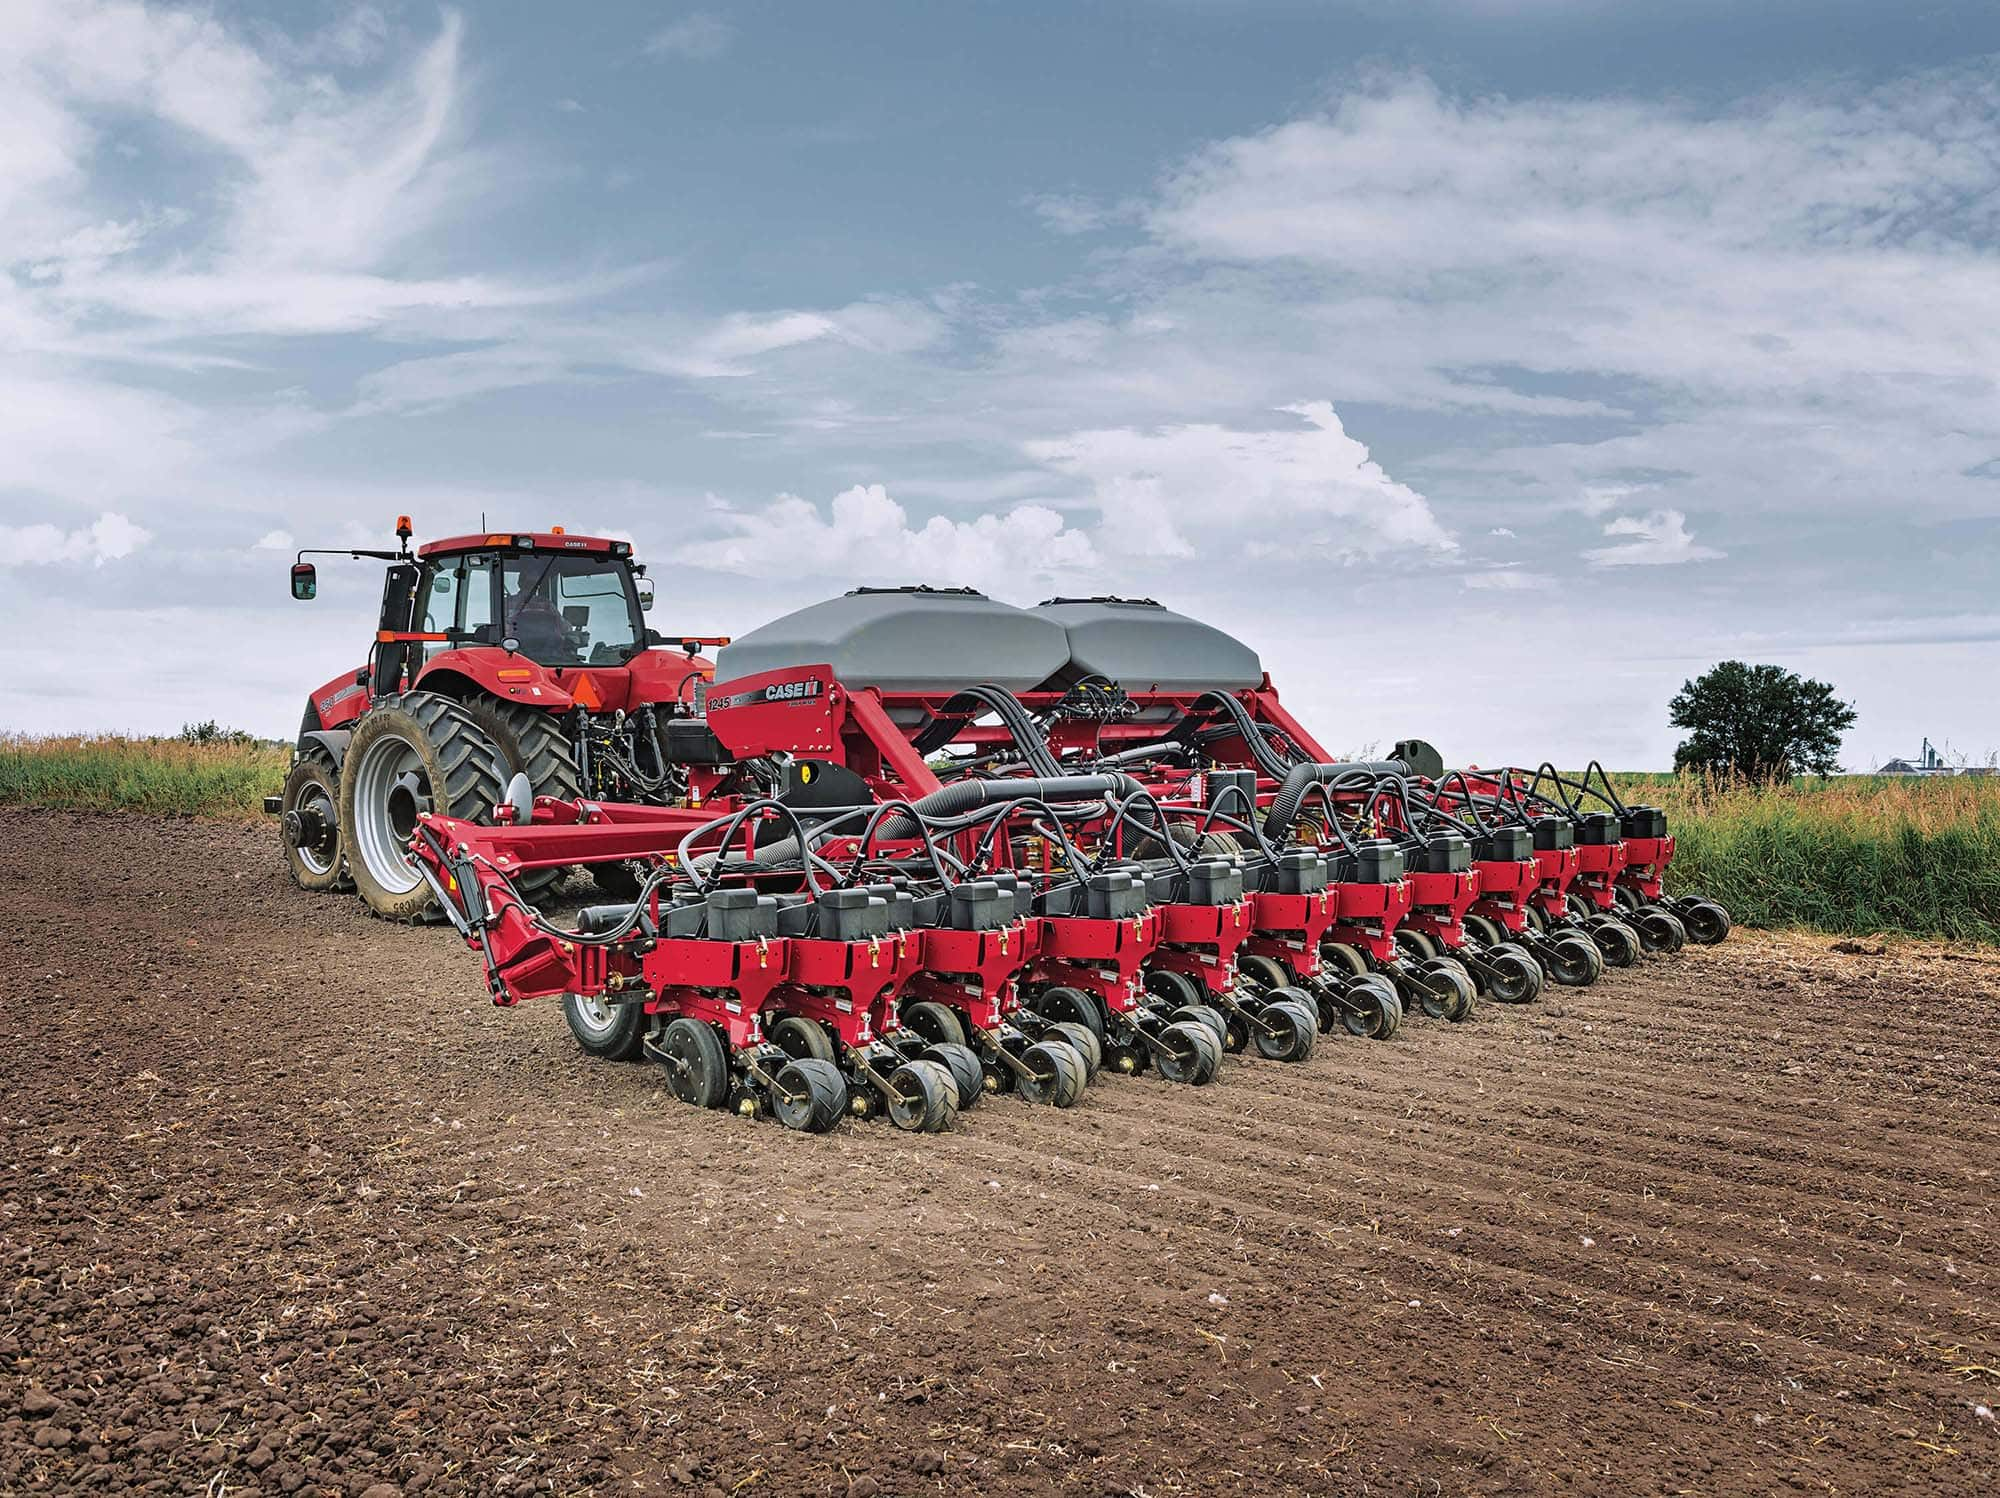 1245 Pivot Transport Trailing Early Riser Seed Planter Case Ih